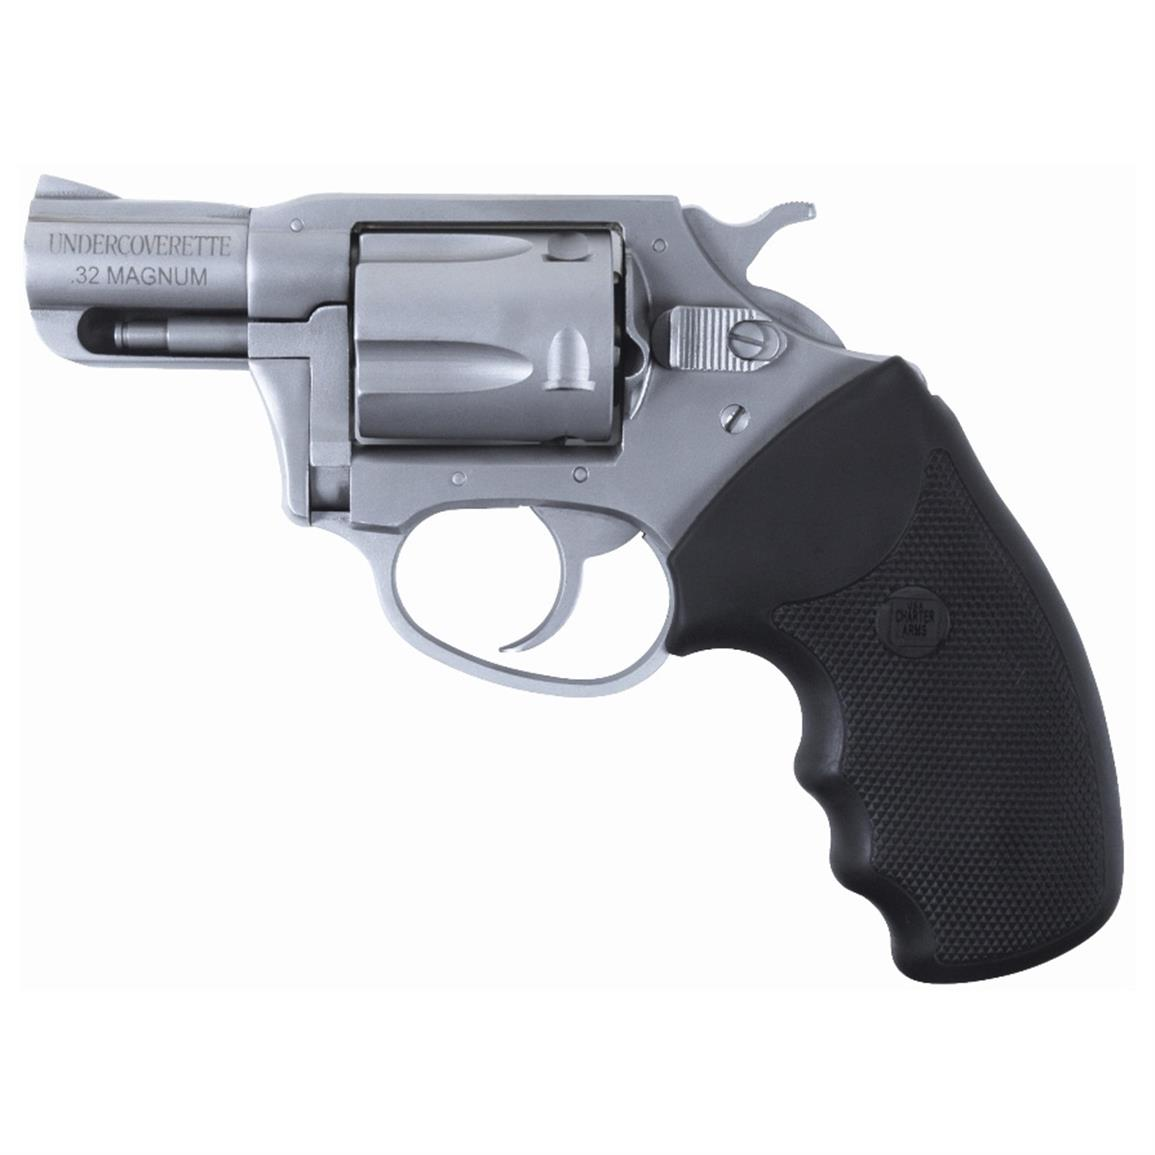 Charter Arms Undercoverette, Revolver, .32 H&R Magnum, 73220, 678958732207